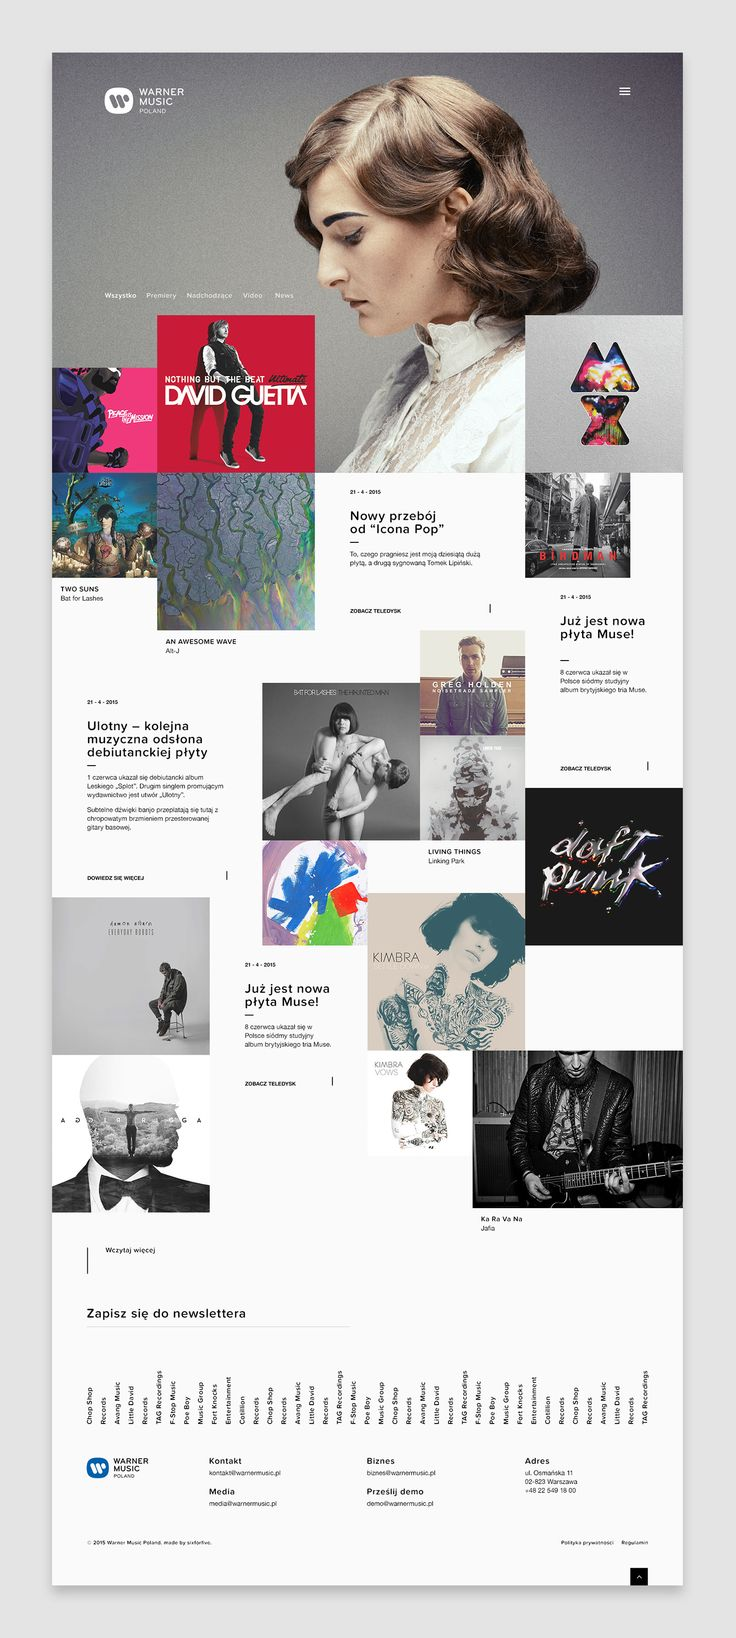 Warner Music Poland by Maciej Mach